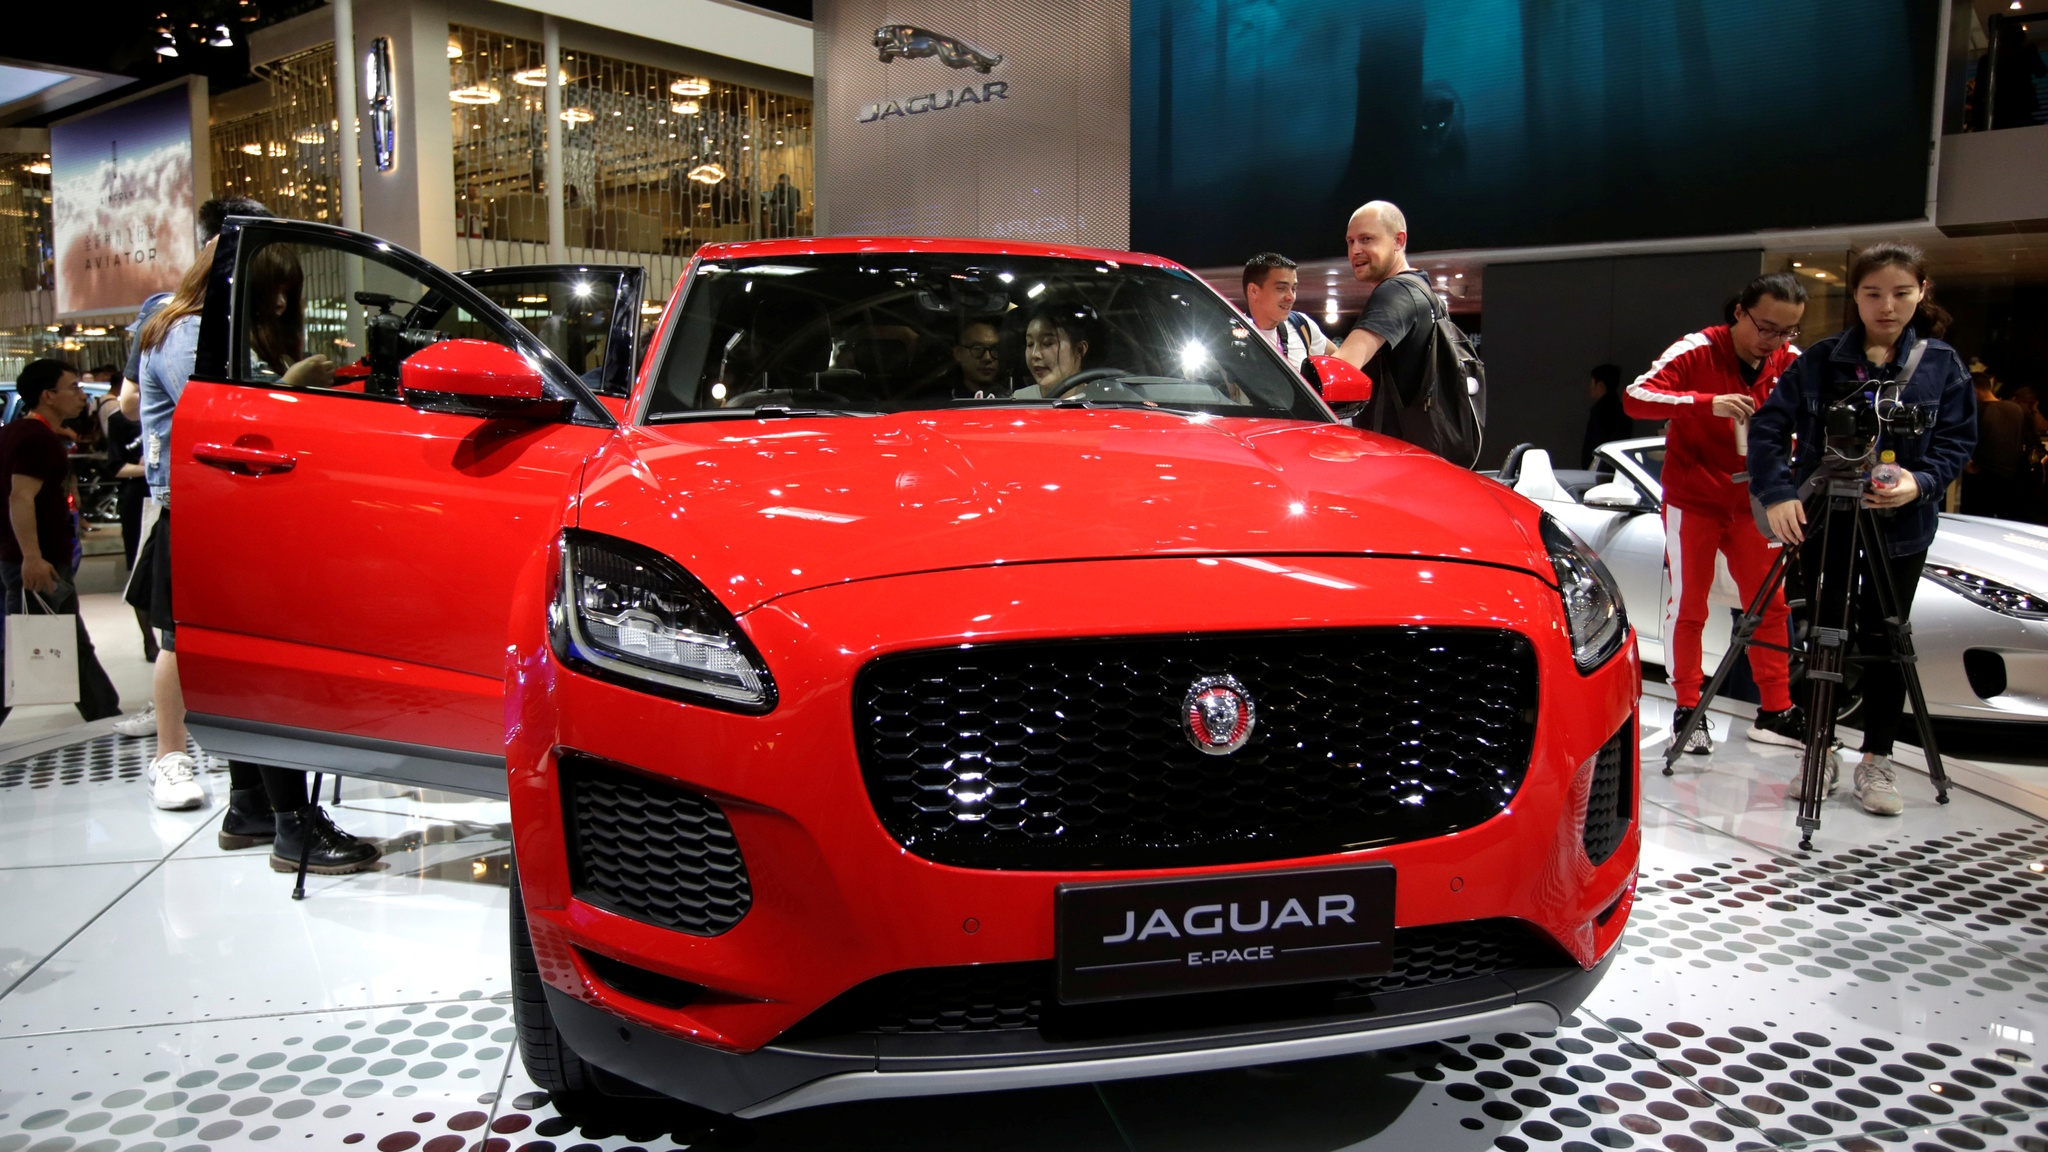 Tata Sees Jaguar Luxury Car Sales Fall For 11th Month In Us Nikkei